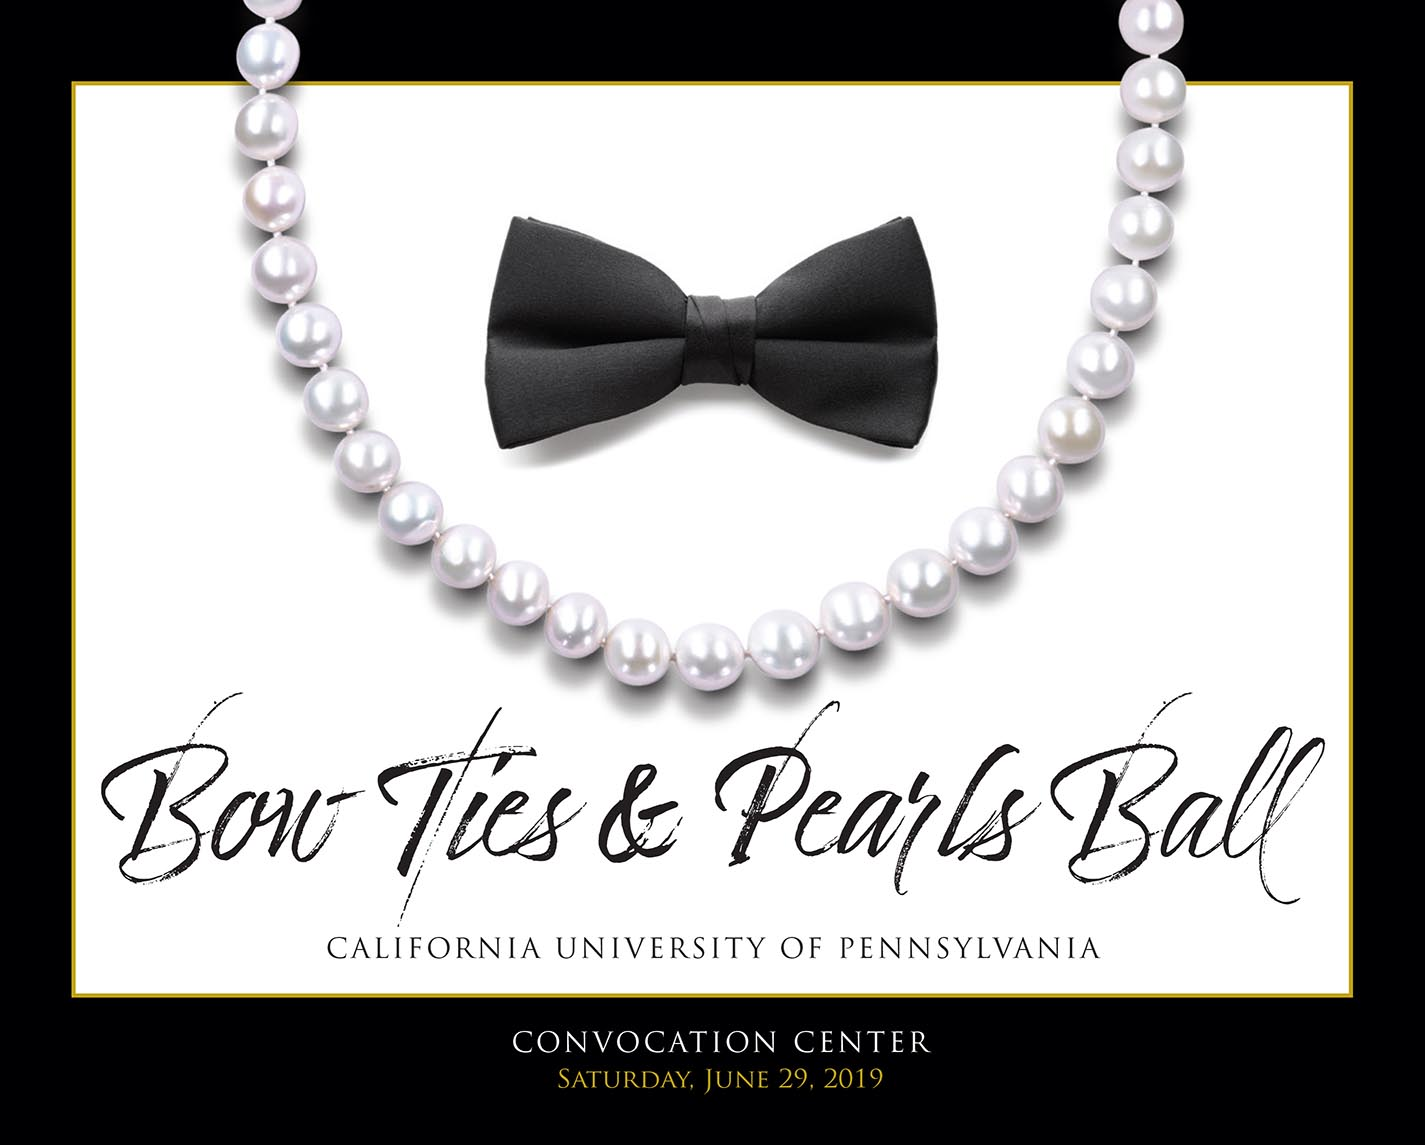 bow ties and pearls